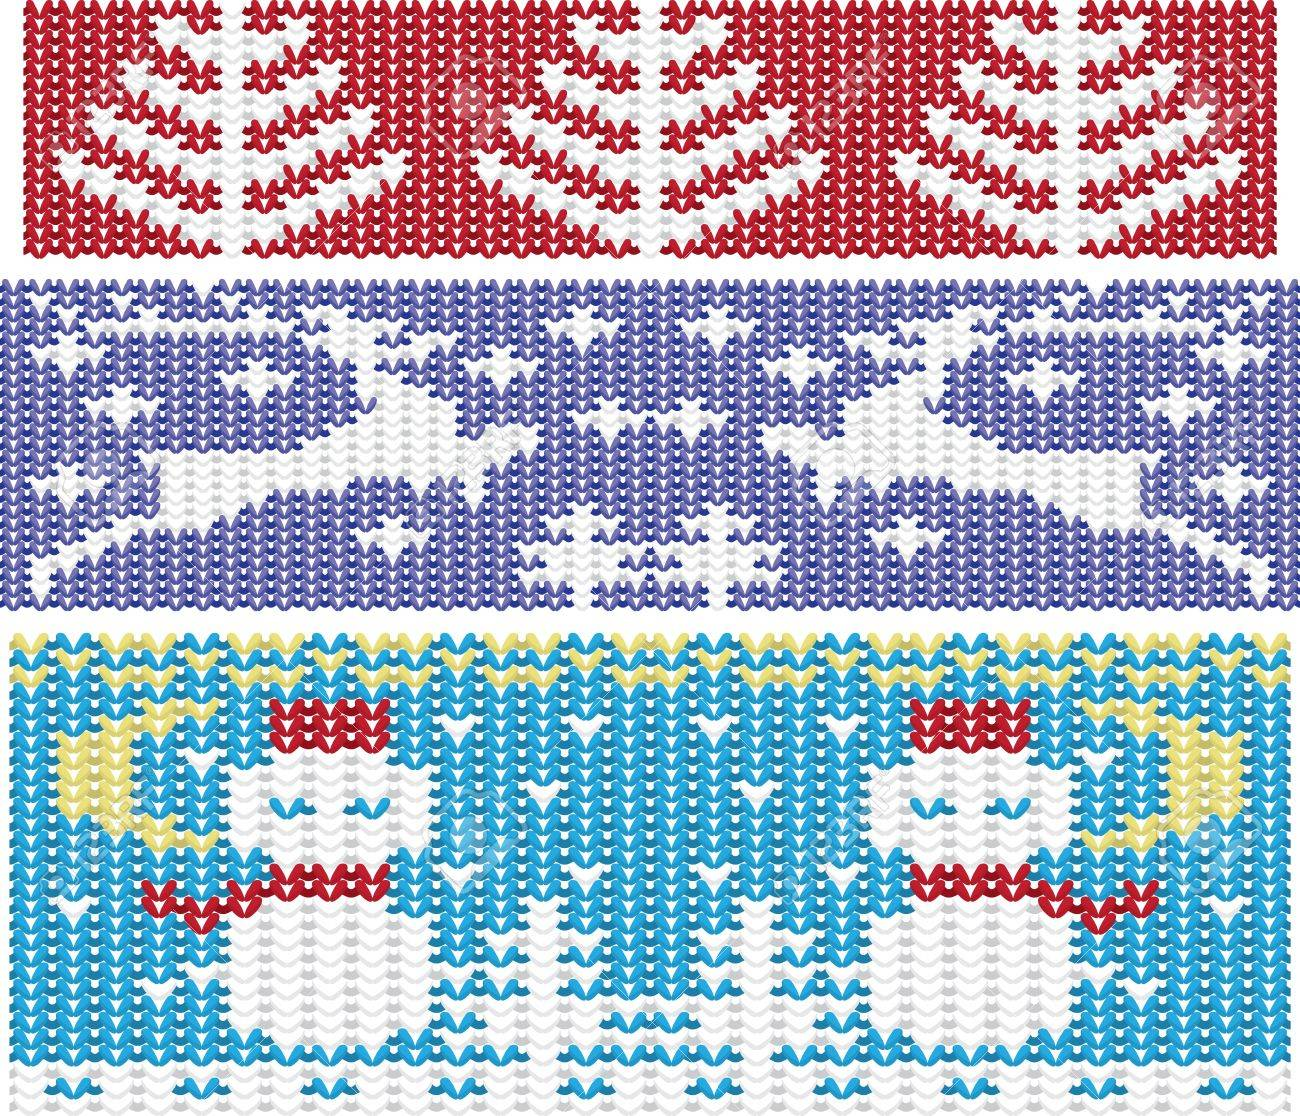 Knitted Christmas Ornaments Set Borders